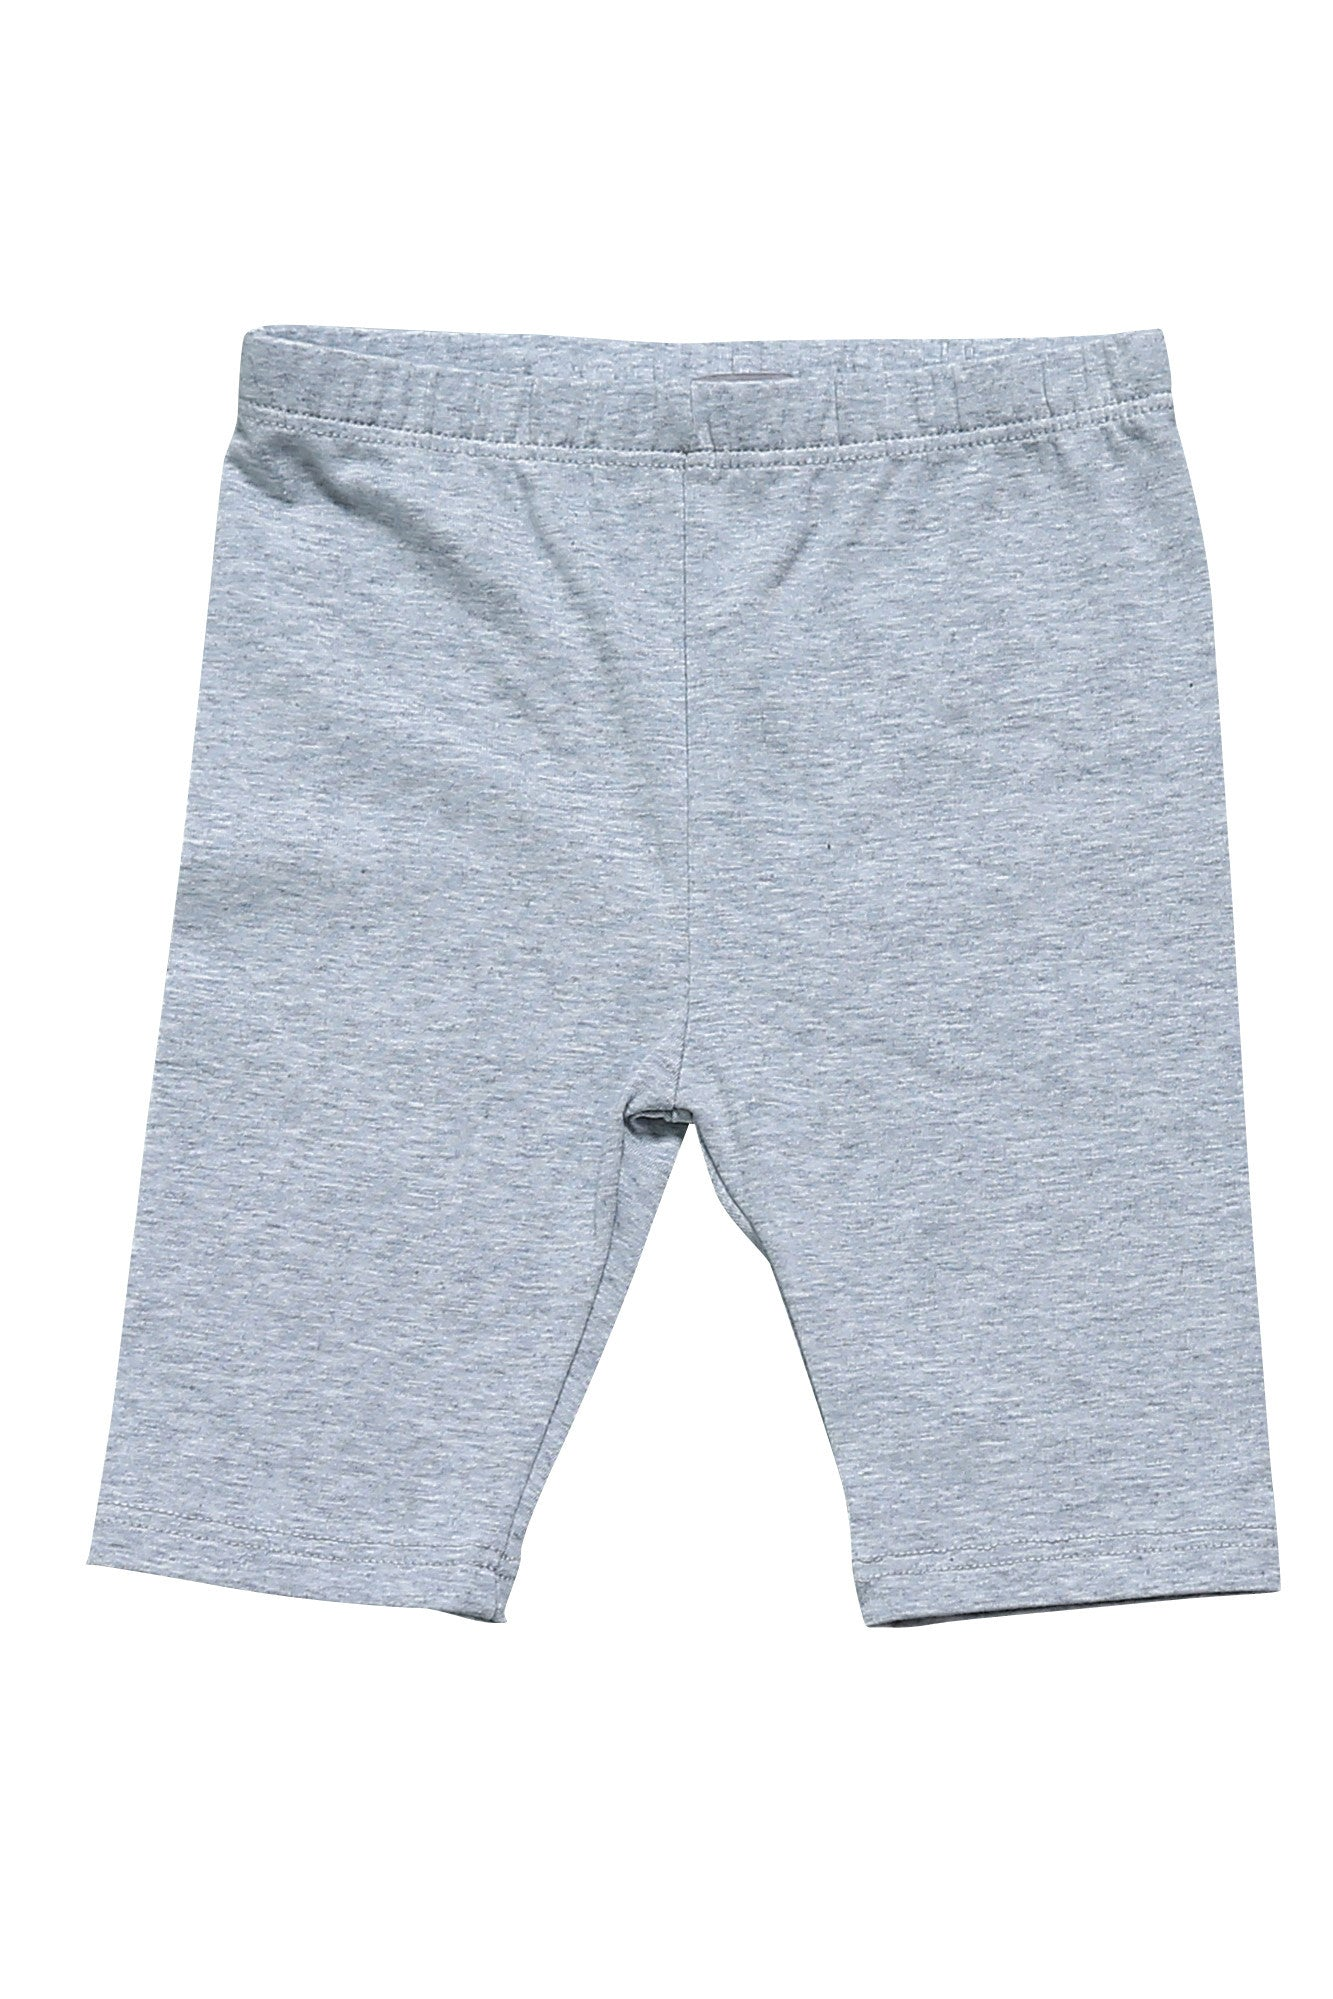 Half Leggings - Girls Essentials Grey Half Leggings